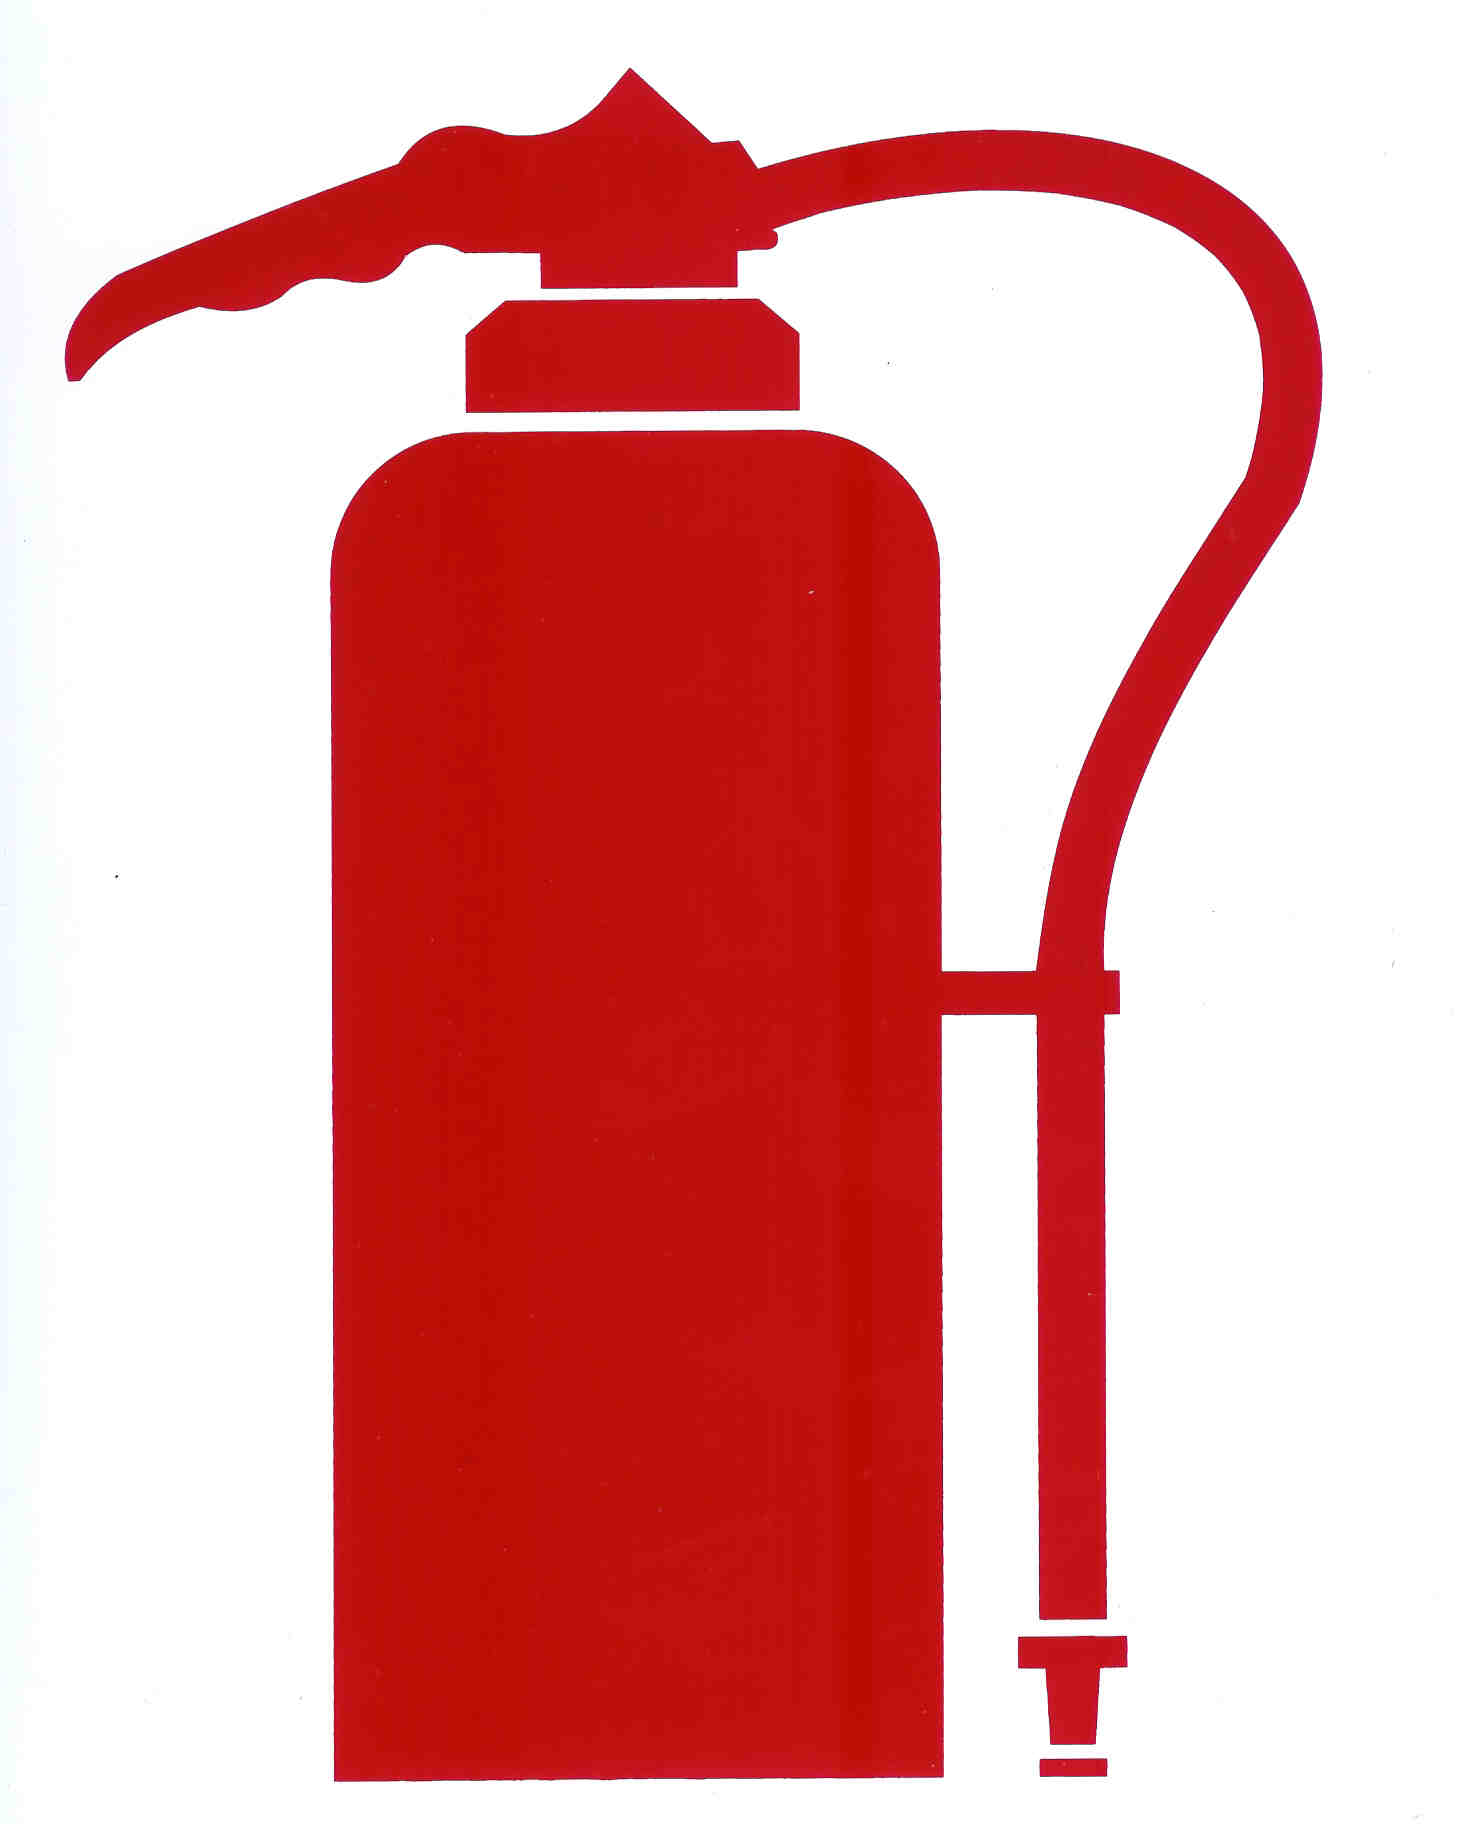 hight resolution of free fire extinguisher images clipart